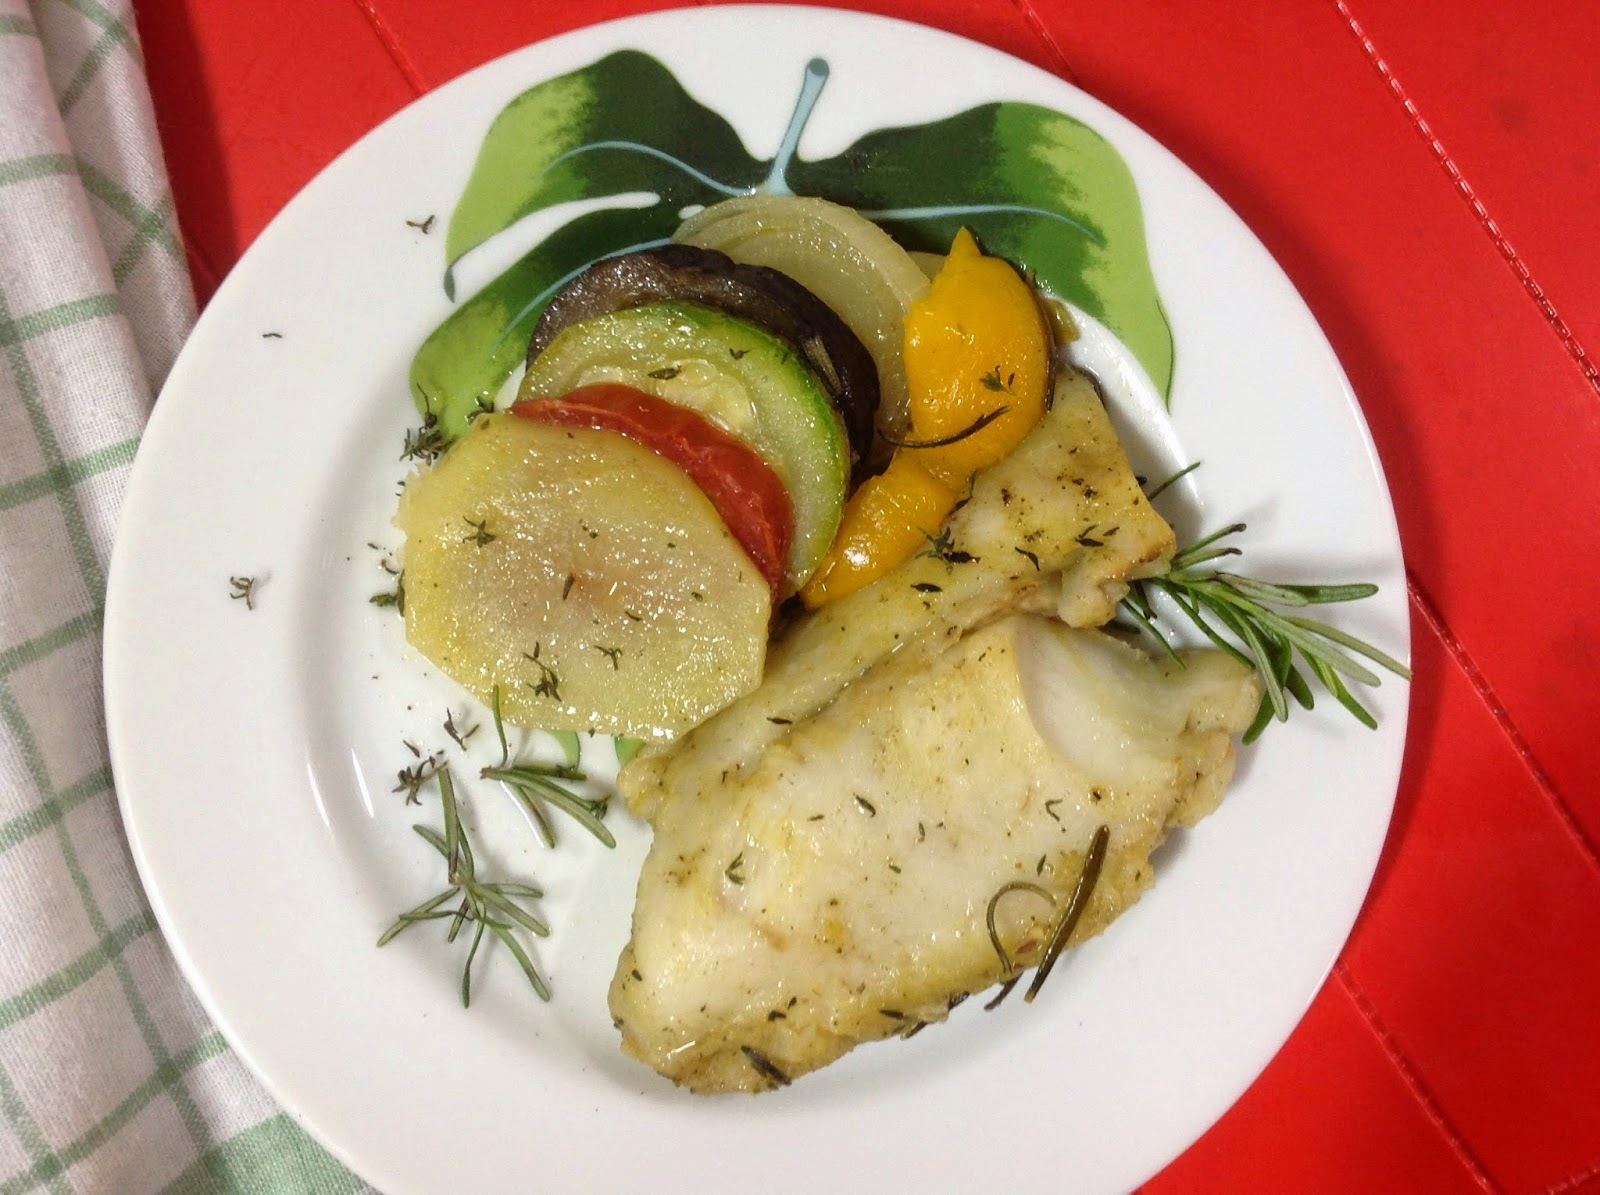 Peixe assado no ratatouille